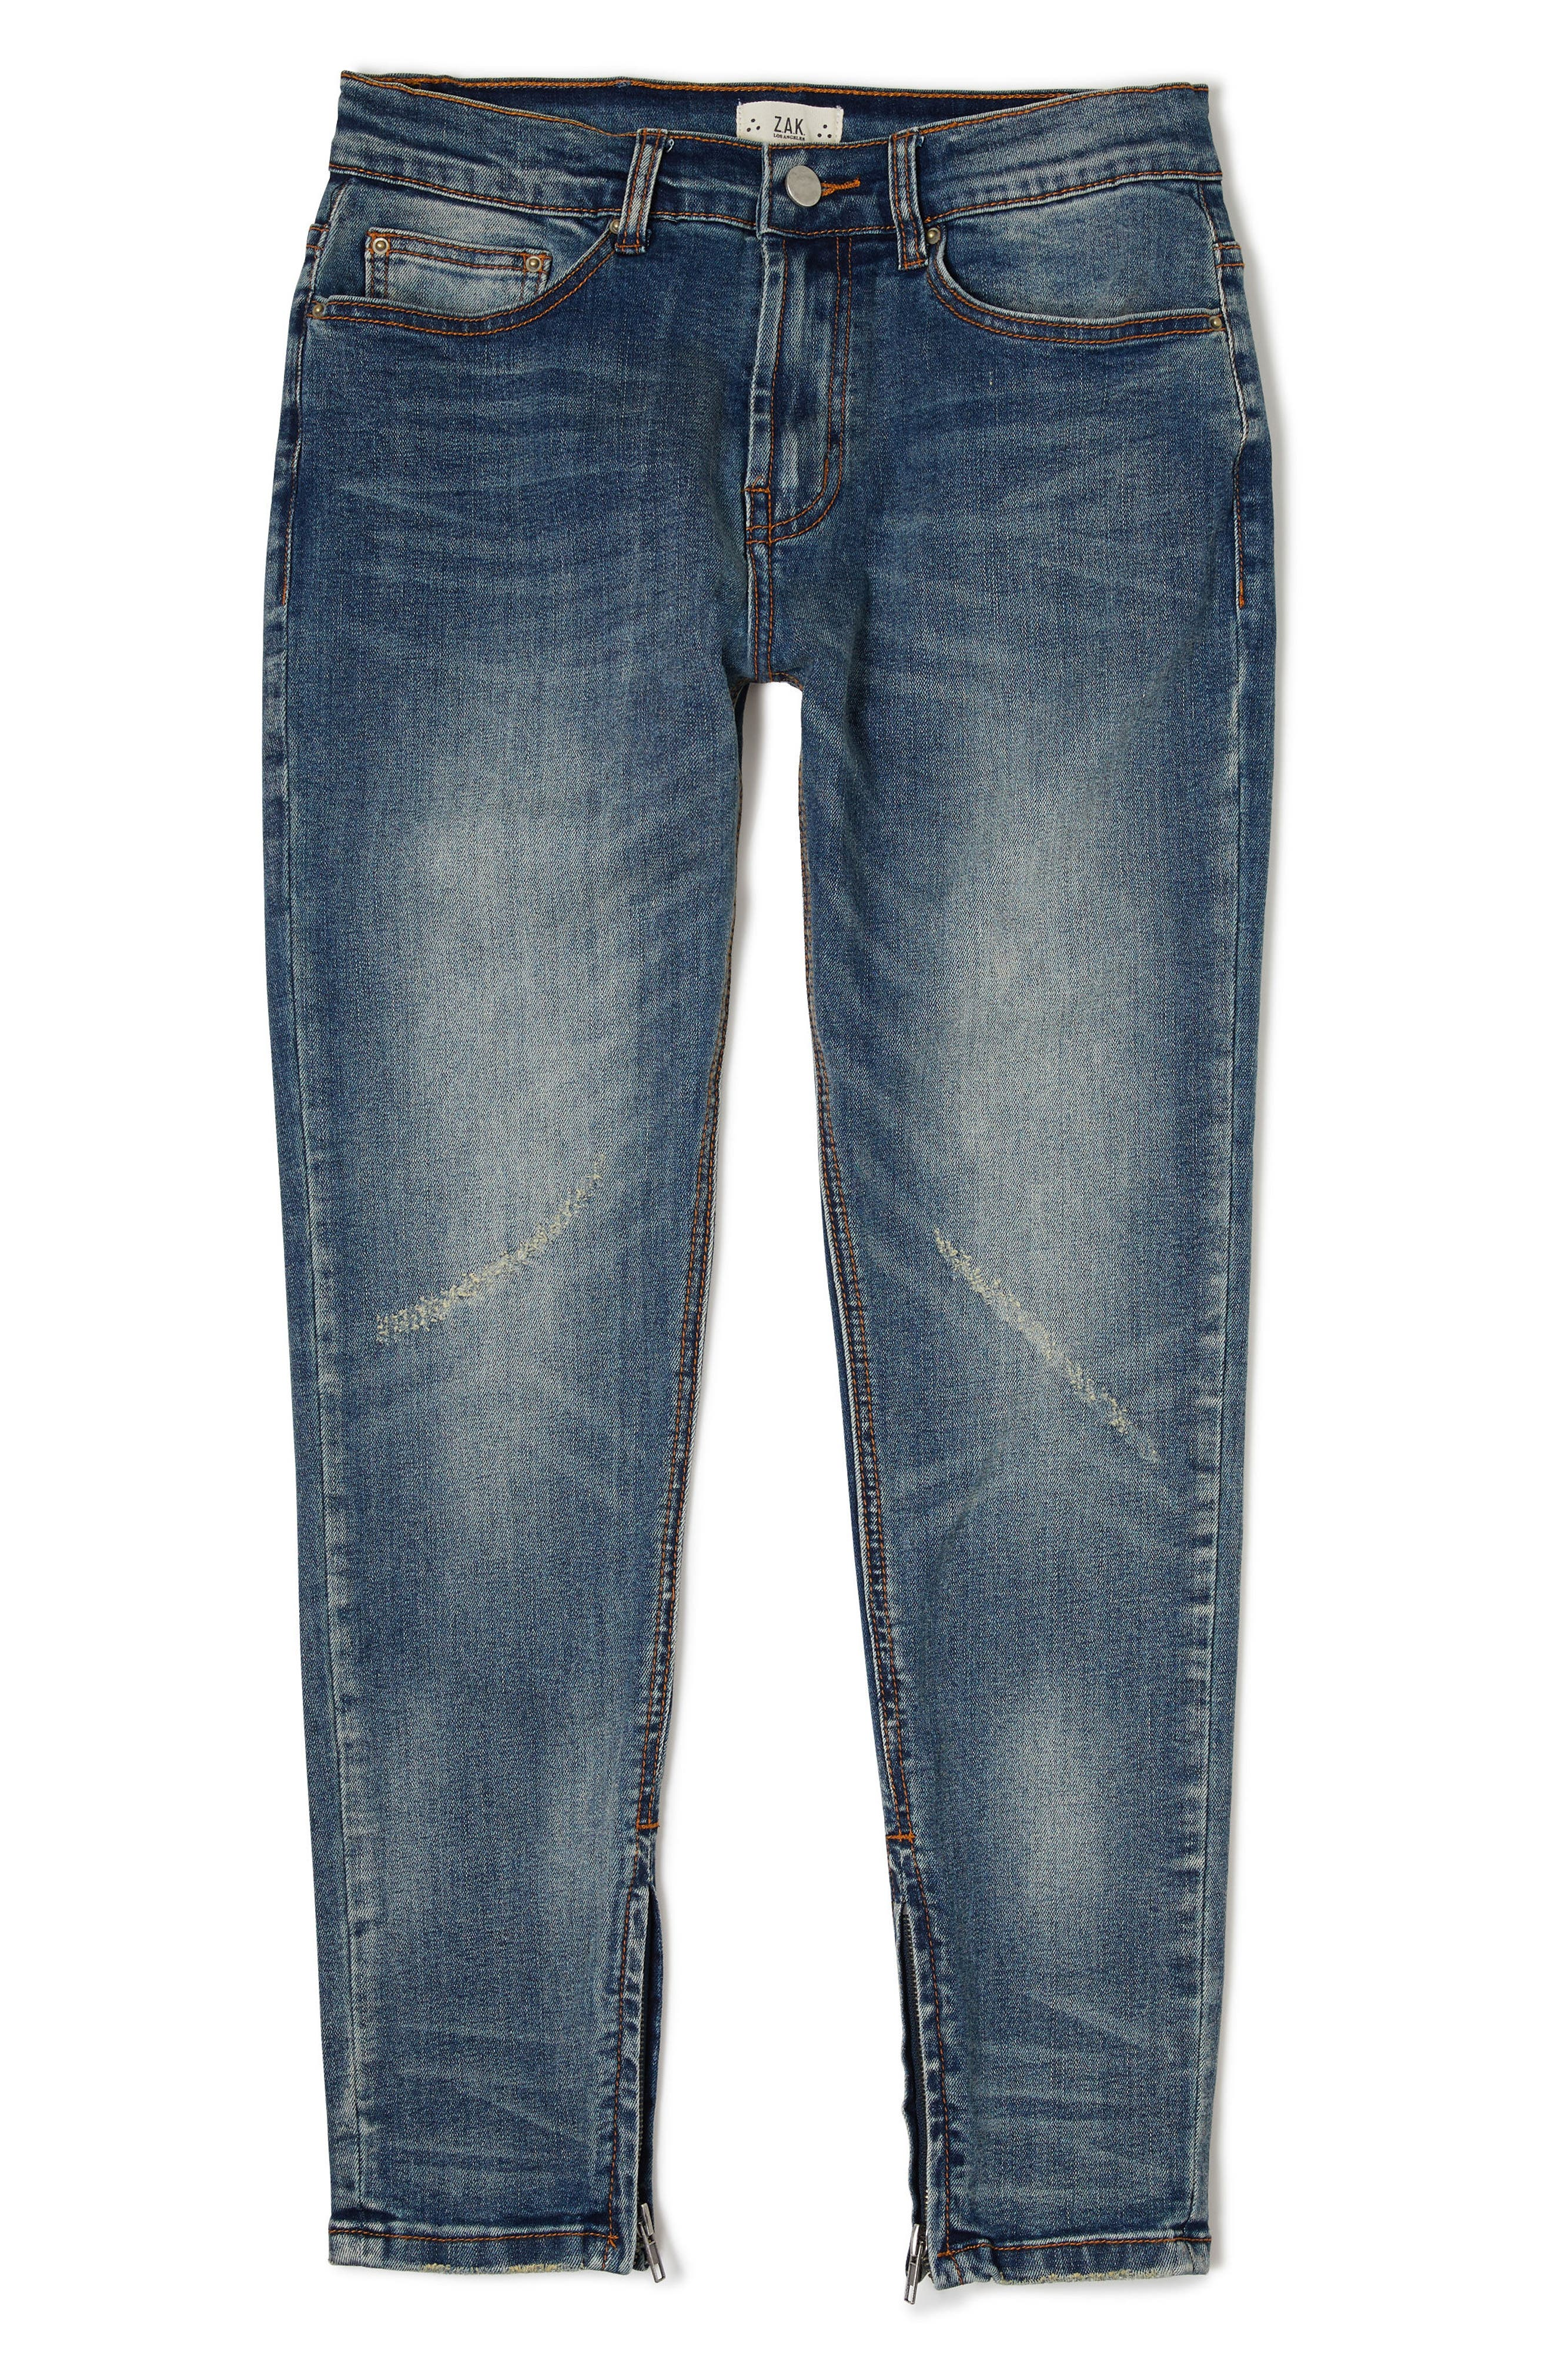 Sand Blasted Moto Skinny Jeans,                         Main,                         color, Dark Wash Denim